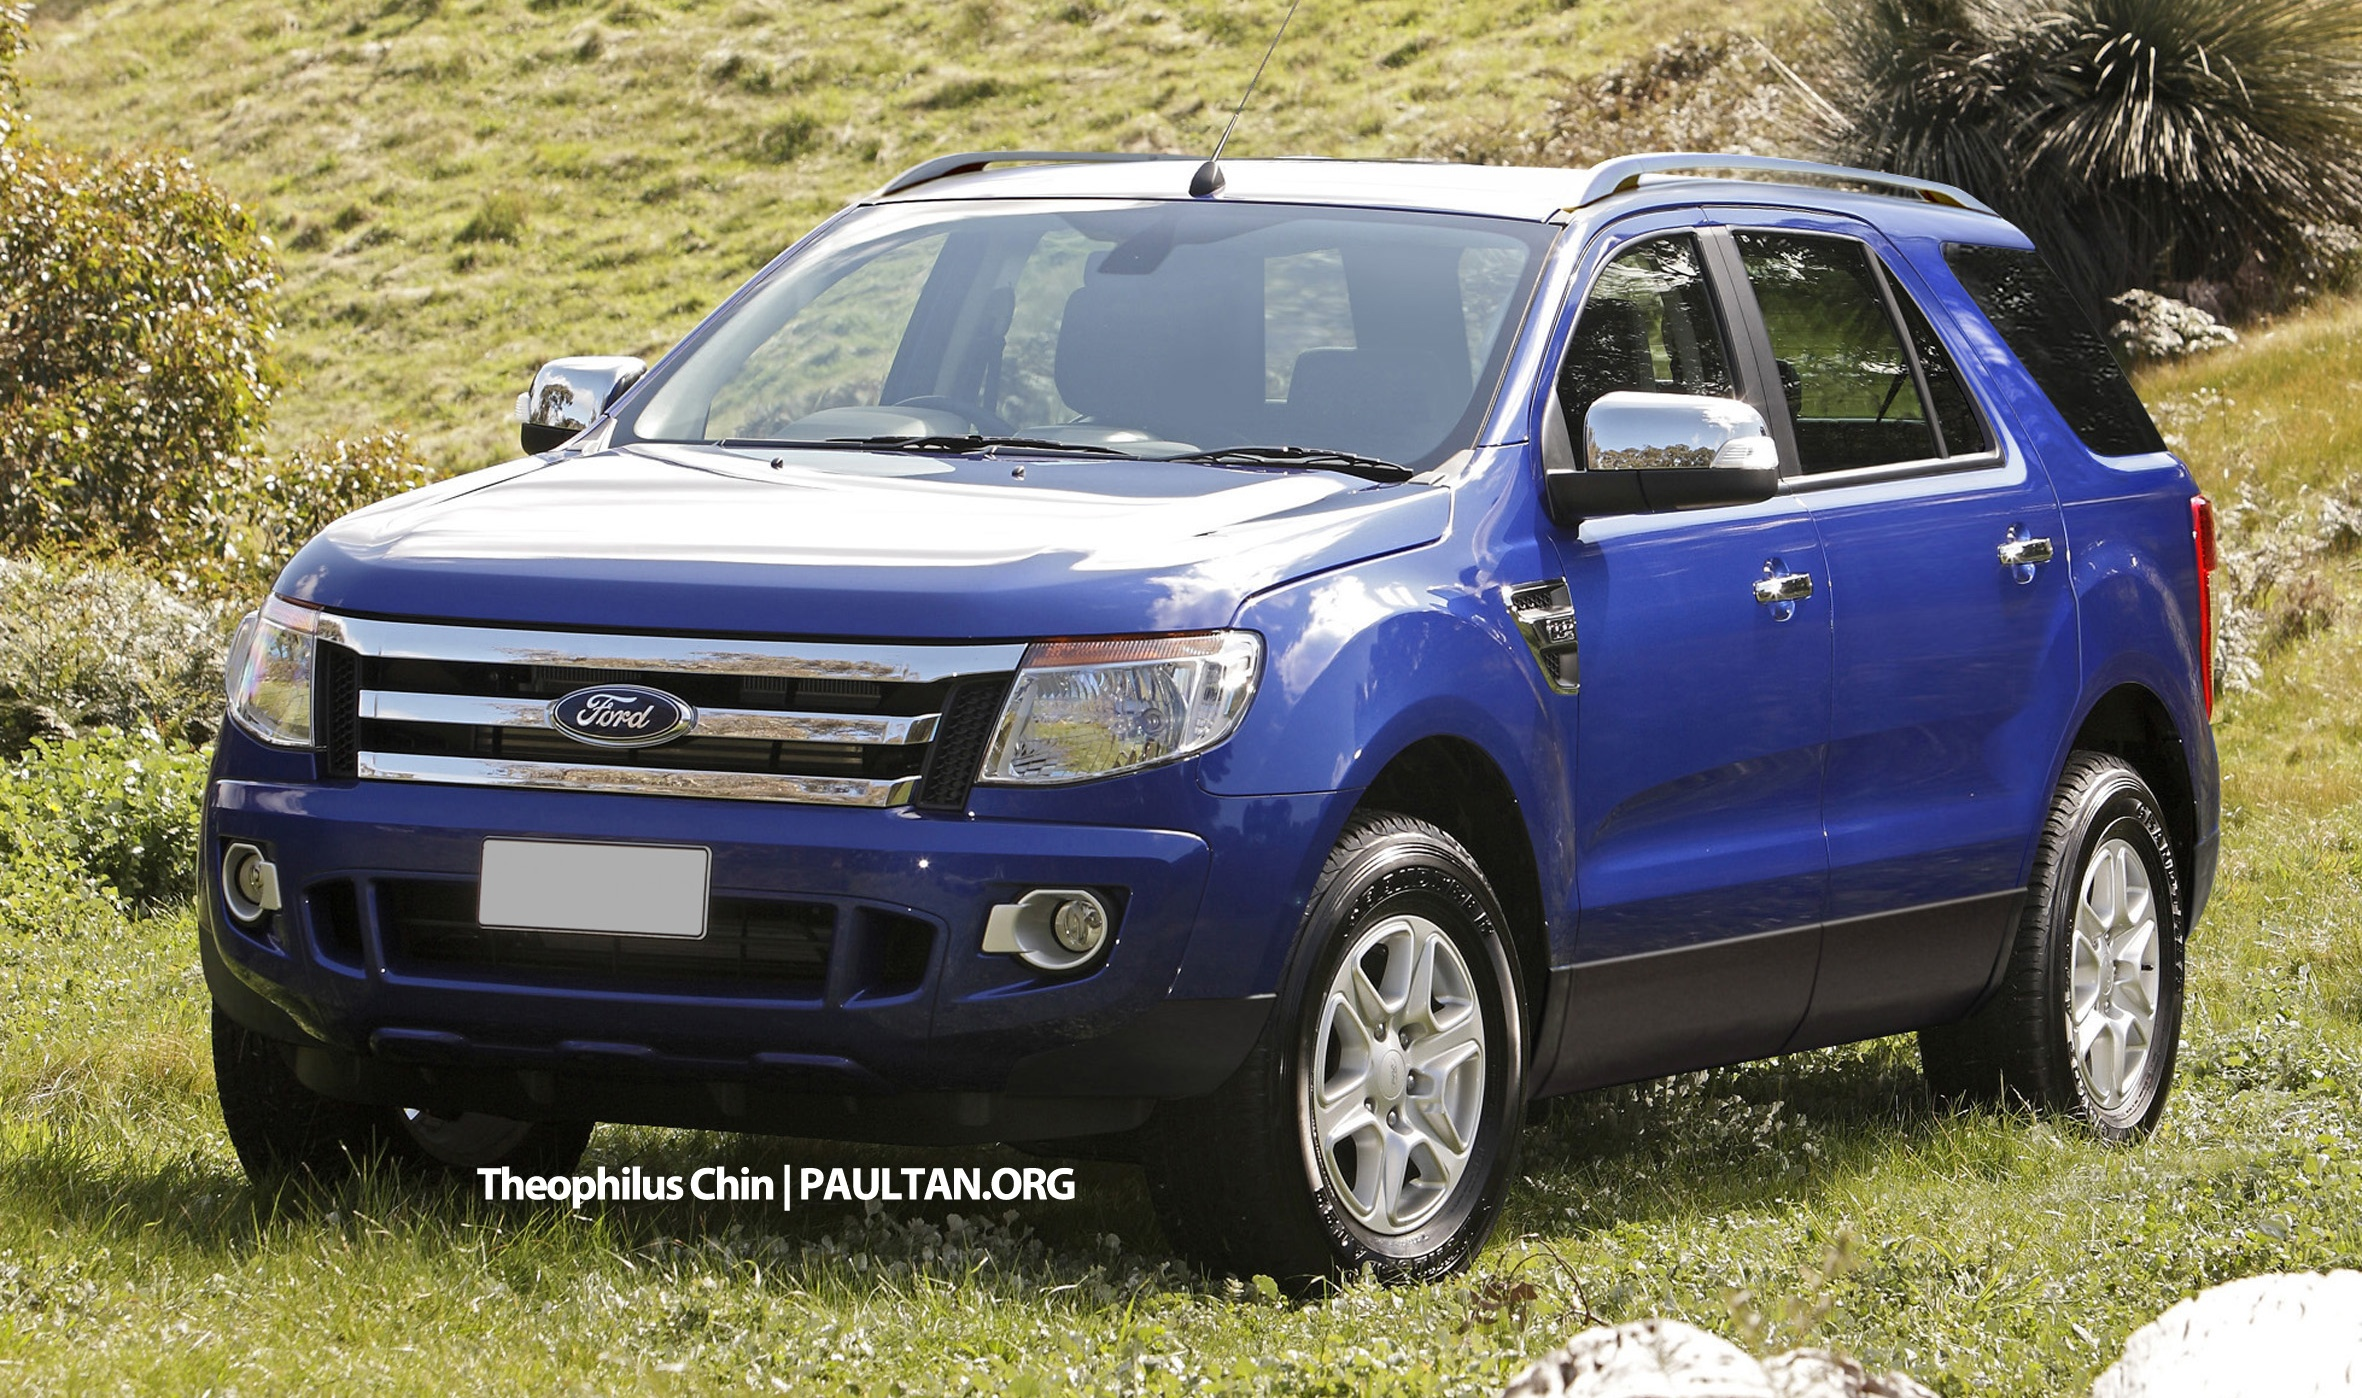 New Ford Everest on the cards – to debut in 2014? Image 177604